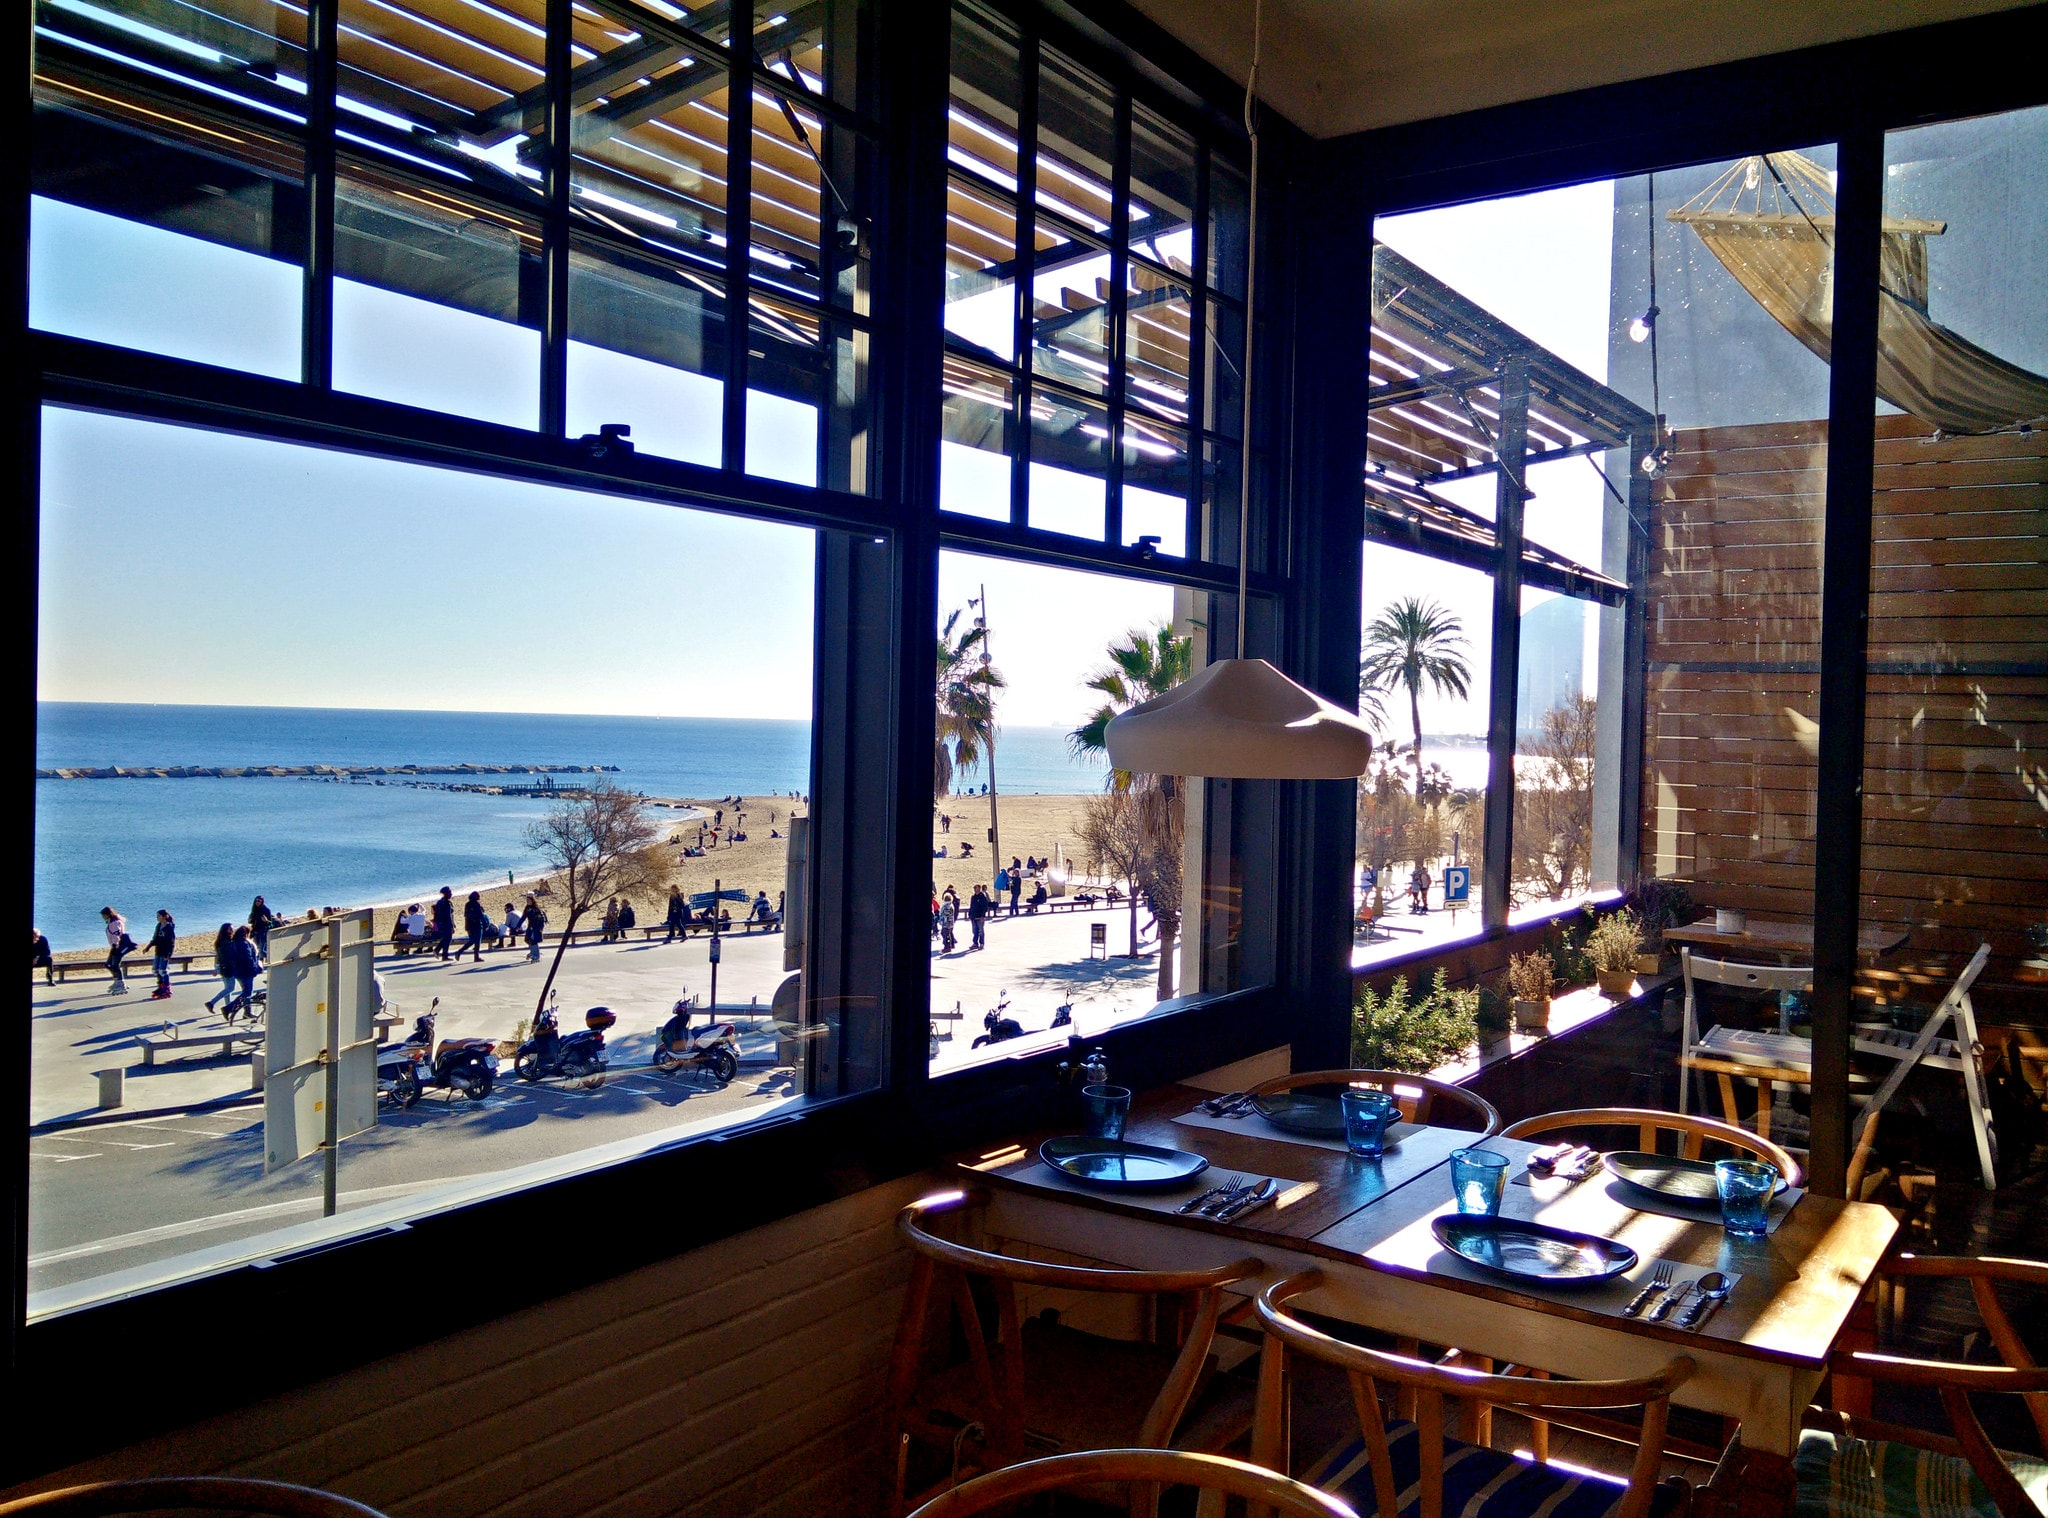 Restaurant Barraca sur la promenade de la Barceloneta - Choses à Faire à Barcelone